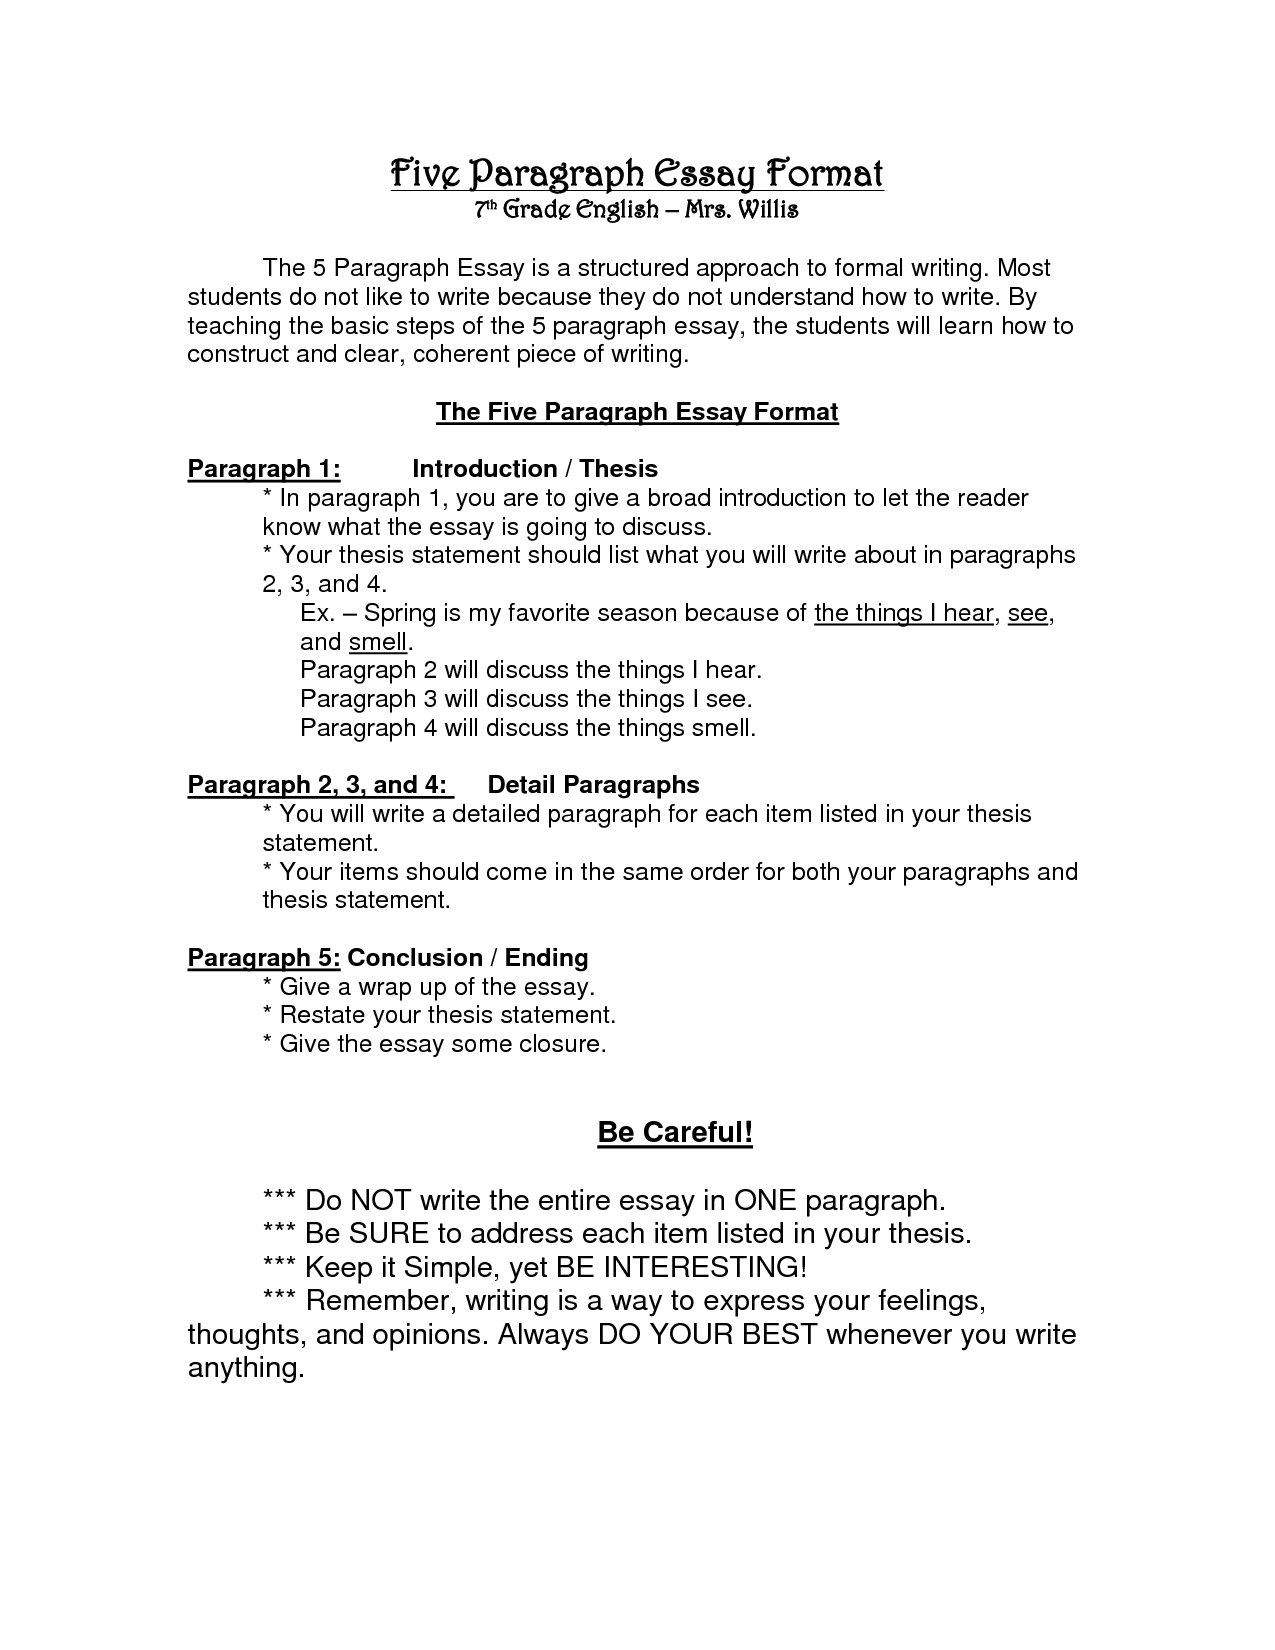 025 Paragraph Essay Outline Template Formats 96536 Fearsome 5 Pdf Persuasive Word Full